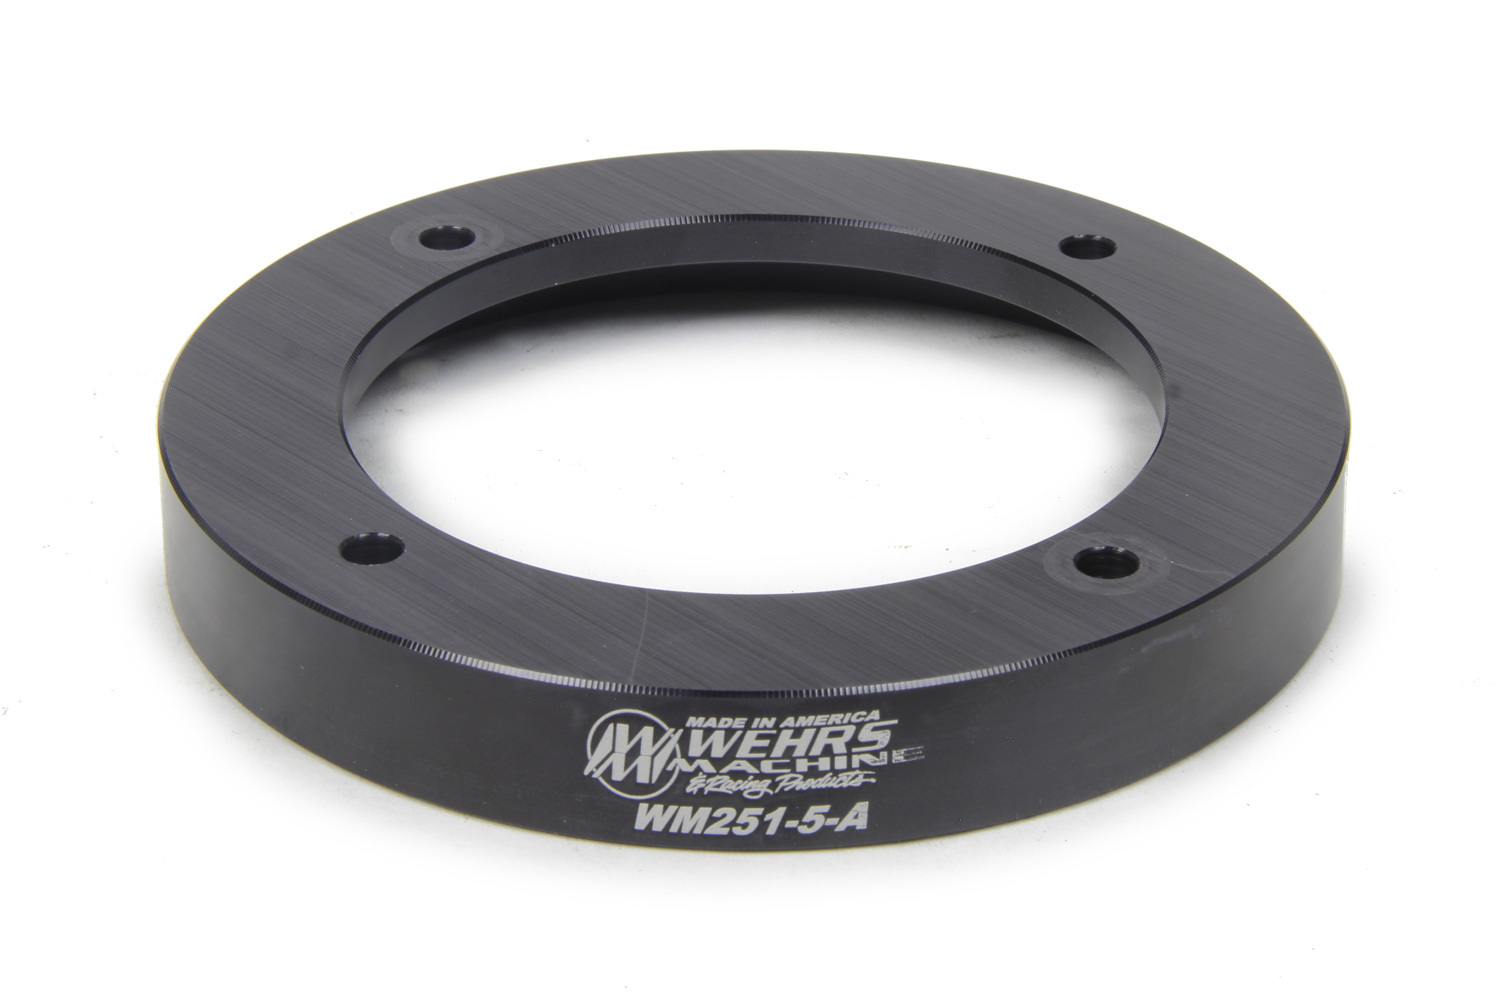 Wehrs Machine Alignment Plate - For Spring Slider